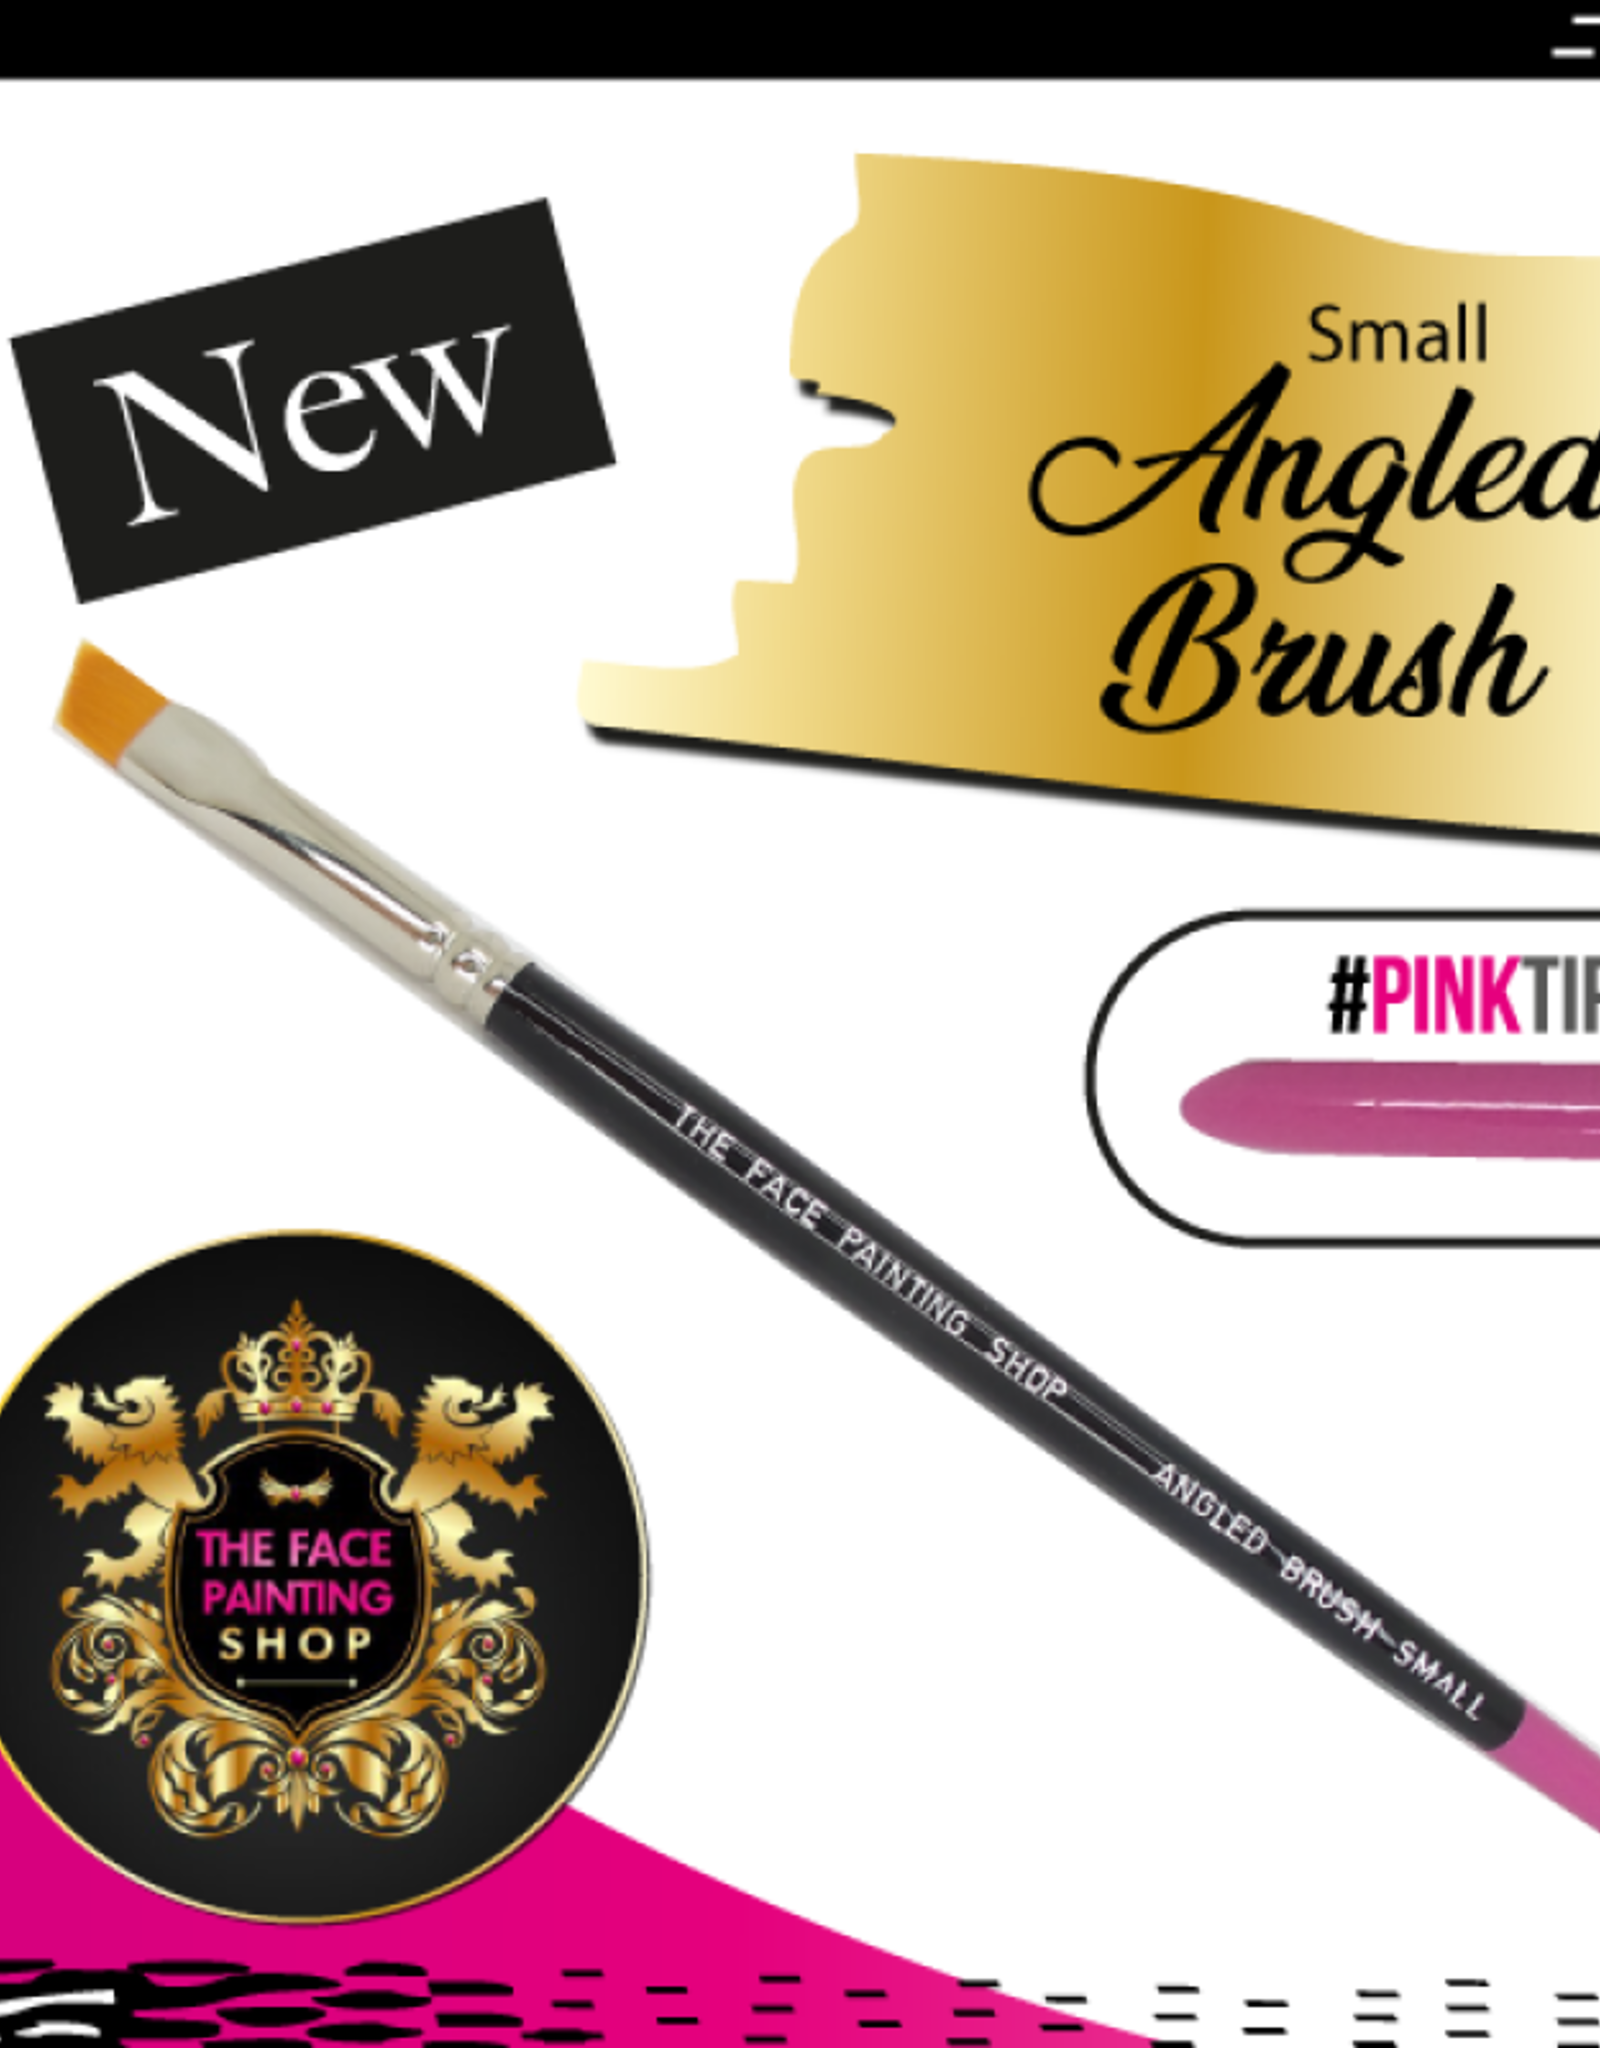 The Facepainting Shop Small Angled Brush